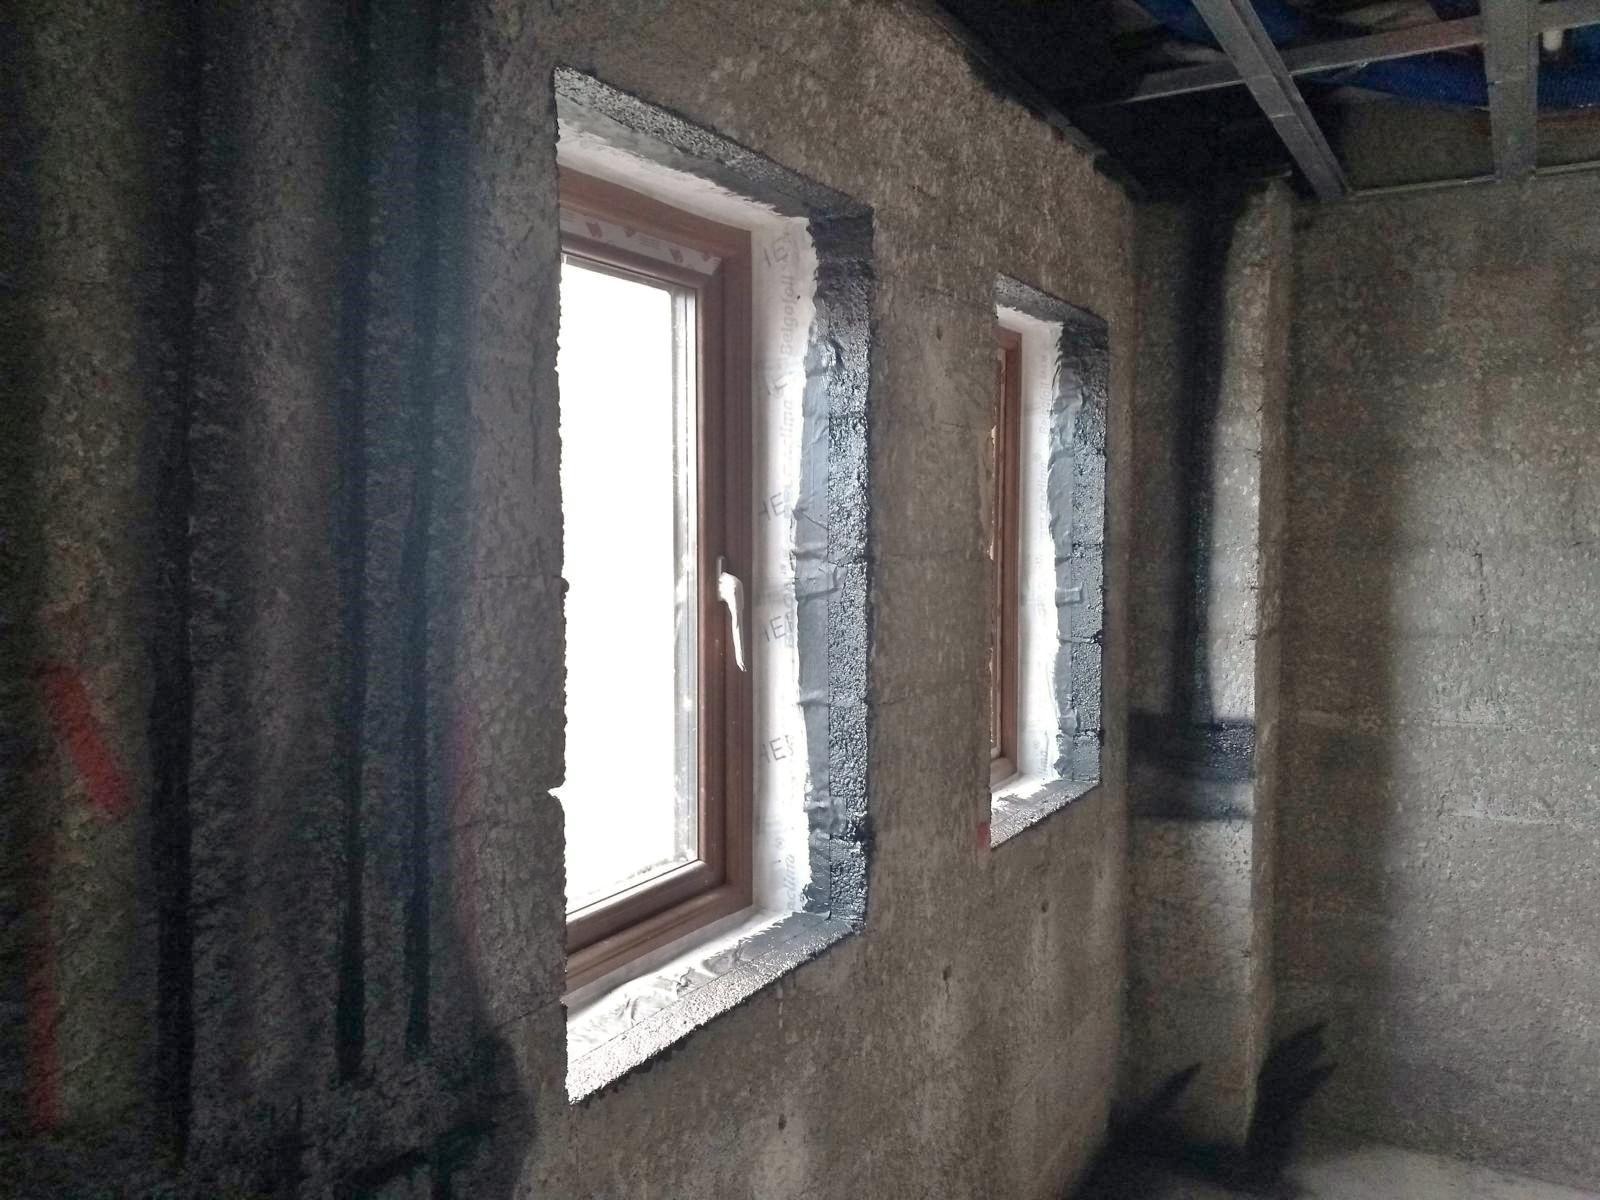 The best preparation for air tight windows - window tape & air tight paint